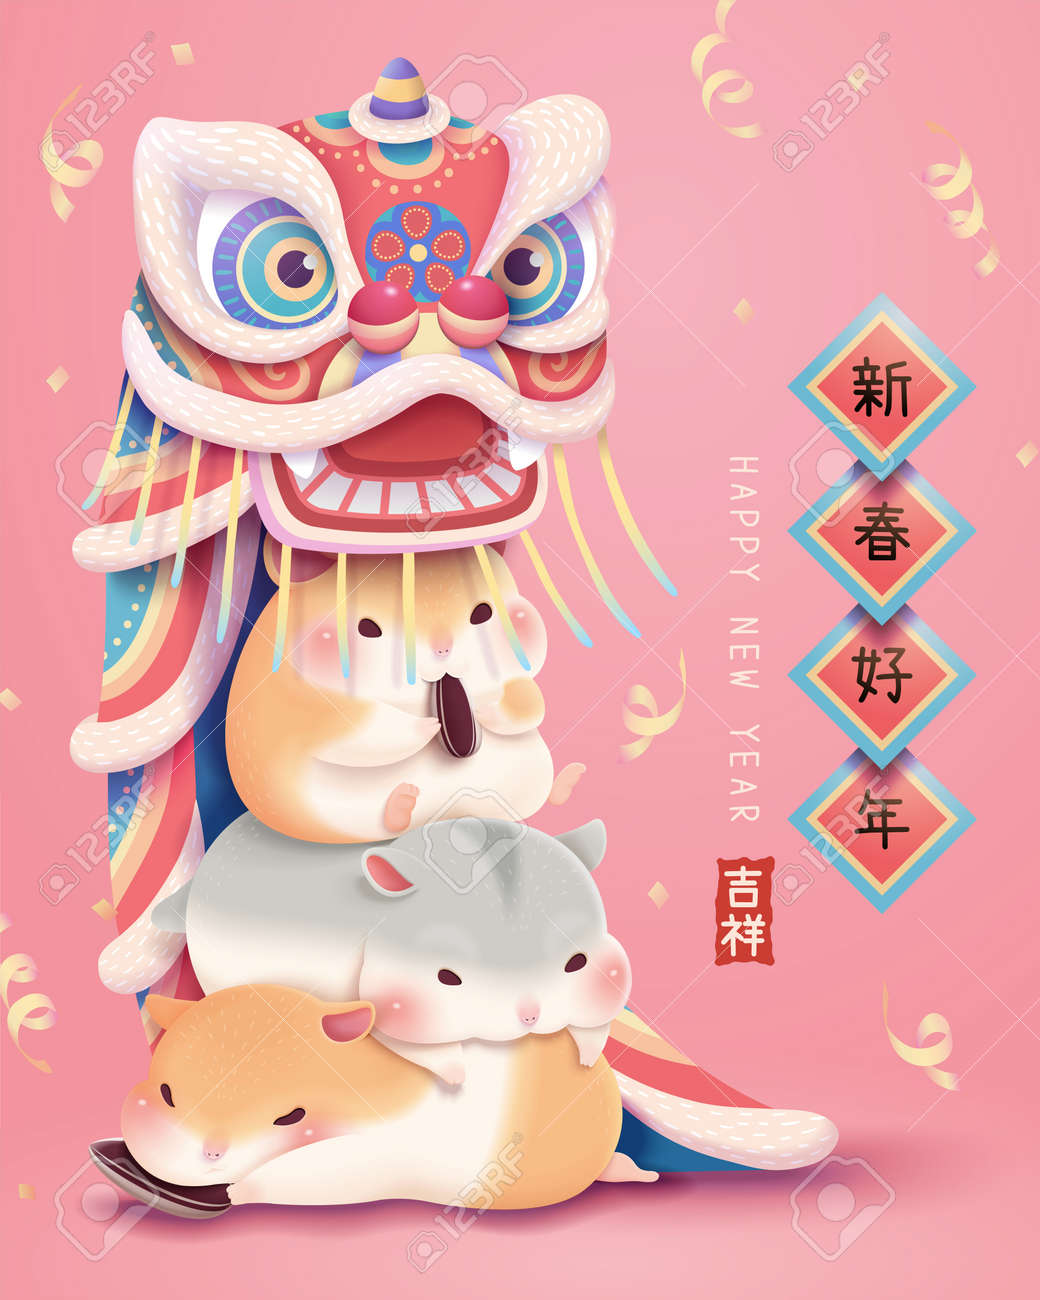 Lovely chubby hamster eating sunflower seeds and playing lion dance on pink background, spring lunar year and suspicious written in Chinese words - 130672294